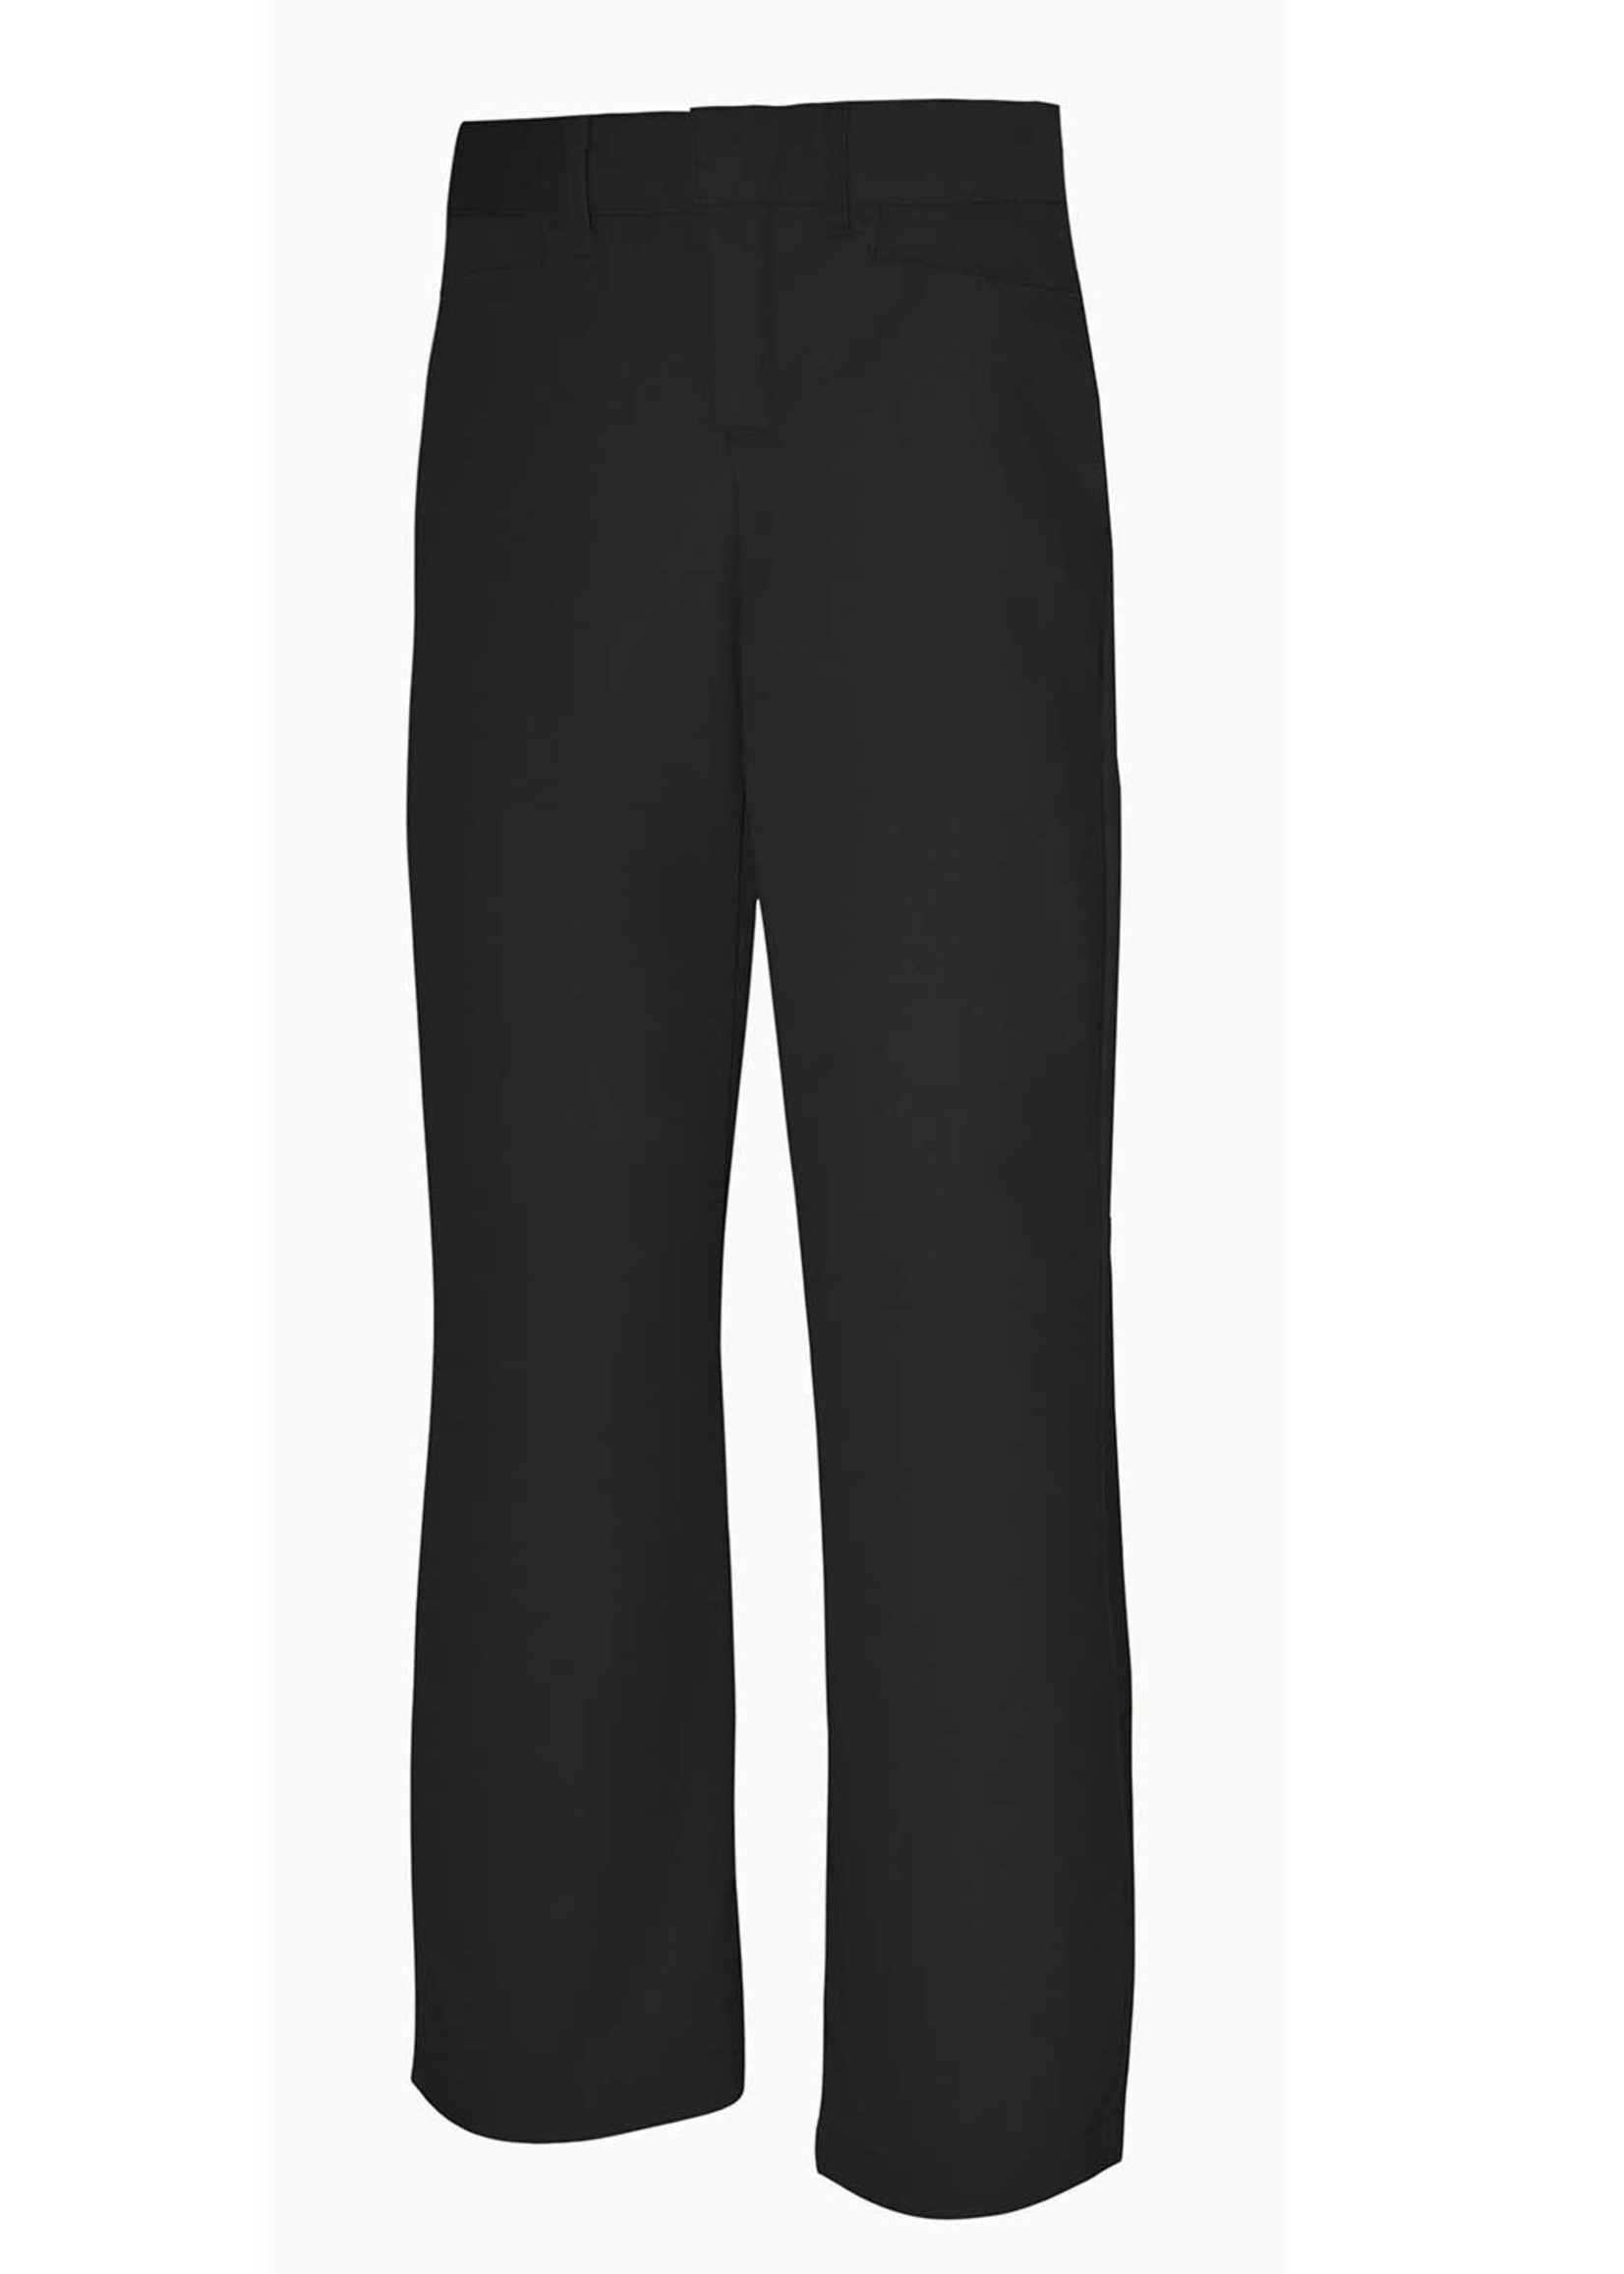 A+ Girls Black Mid Rise Flat Front Pant